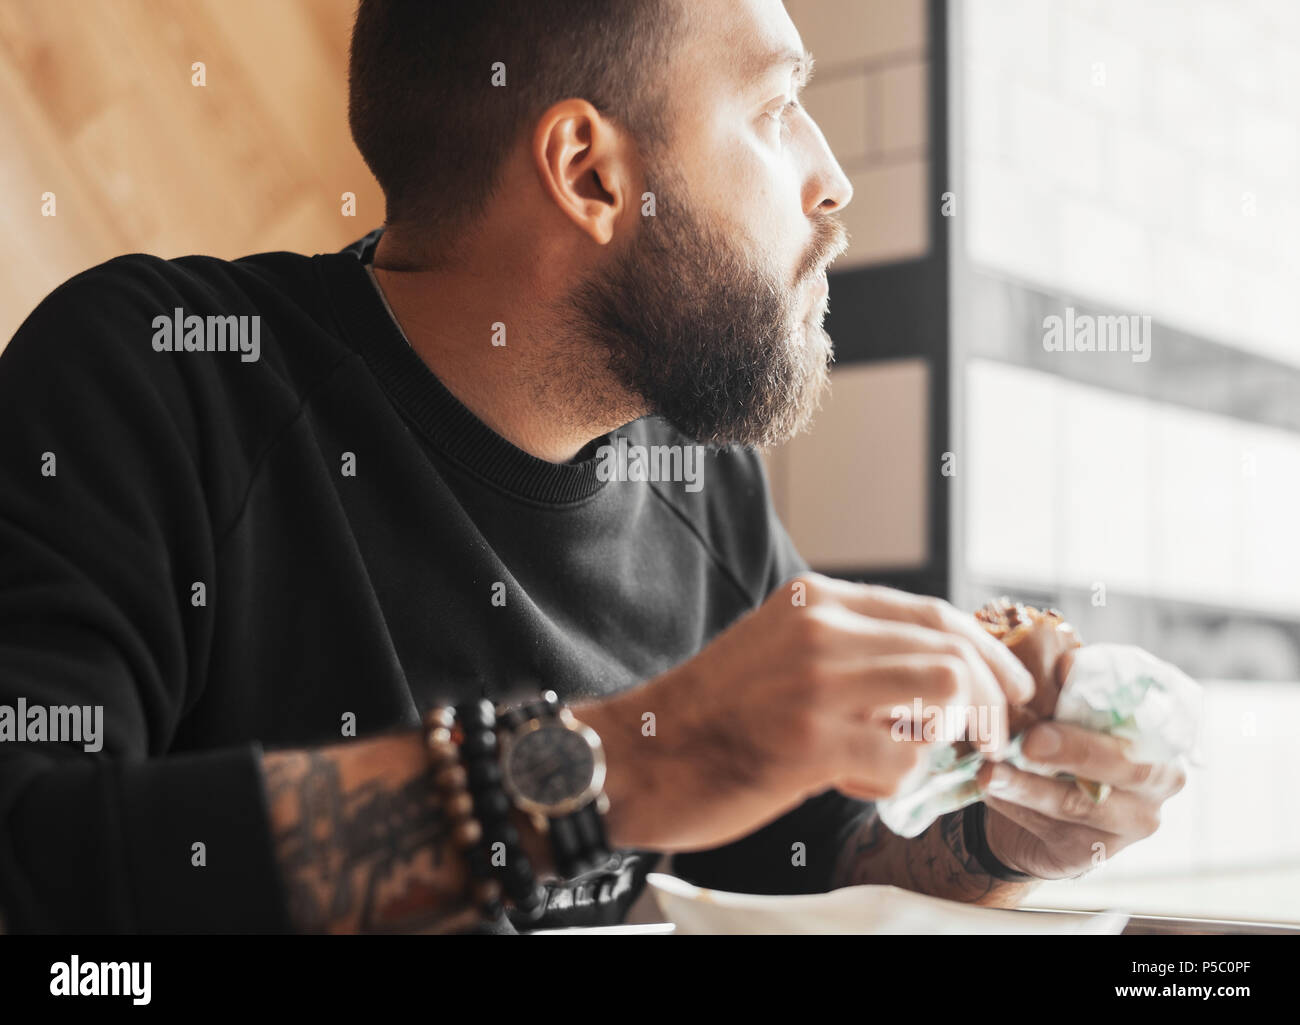 Young bearded man eating burger close up. - Stock Image